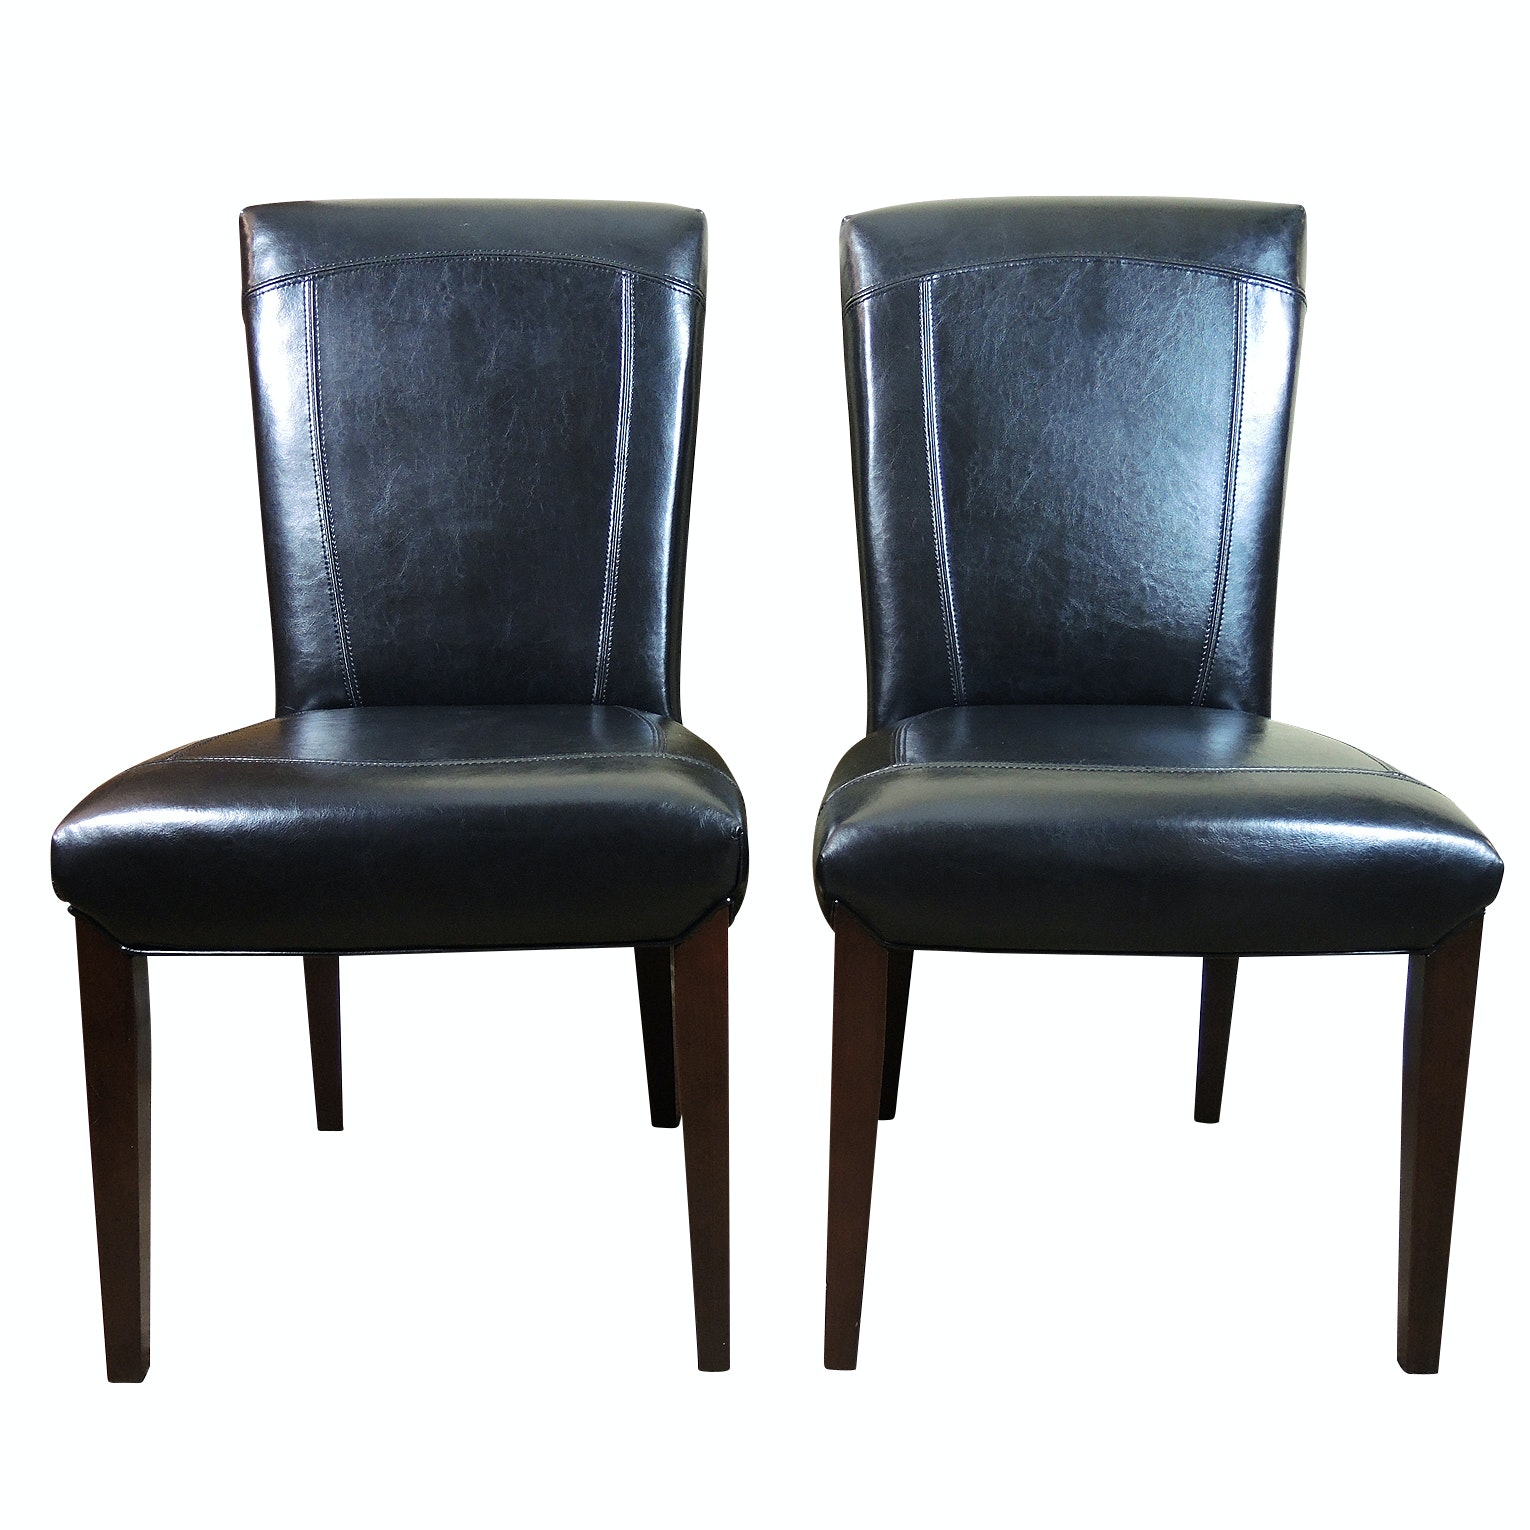 Pair of Contemporary Leather Upholstered Parson's Chairs